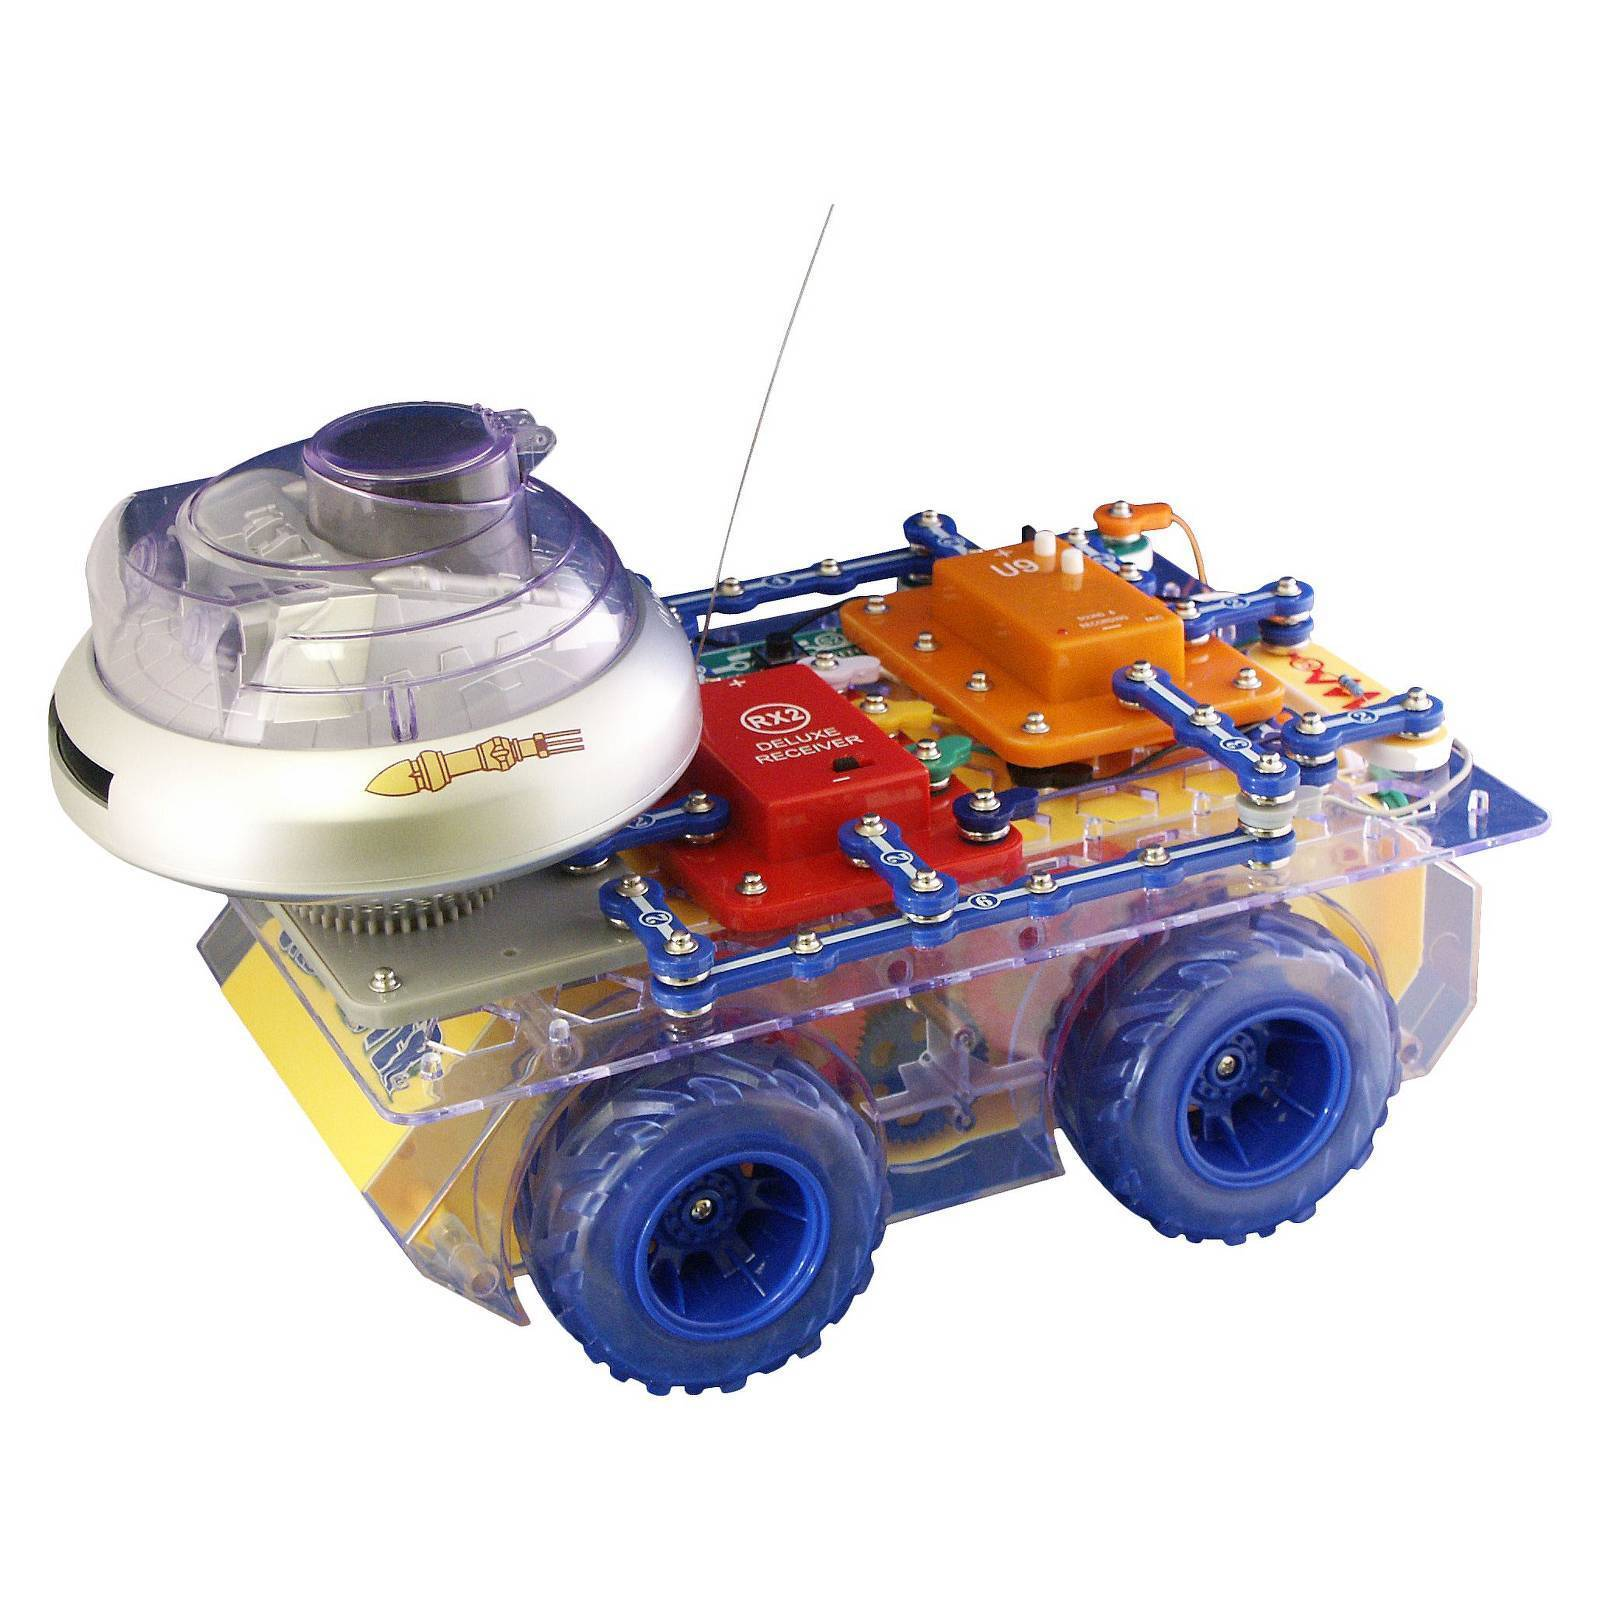 Elenco Electronics Snap Circuits Deluxe Rover Educational Toy Kids Sc750r Student Training Program Is Basically An Stock Photo